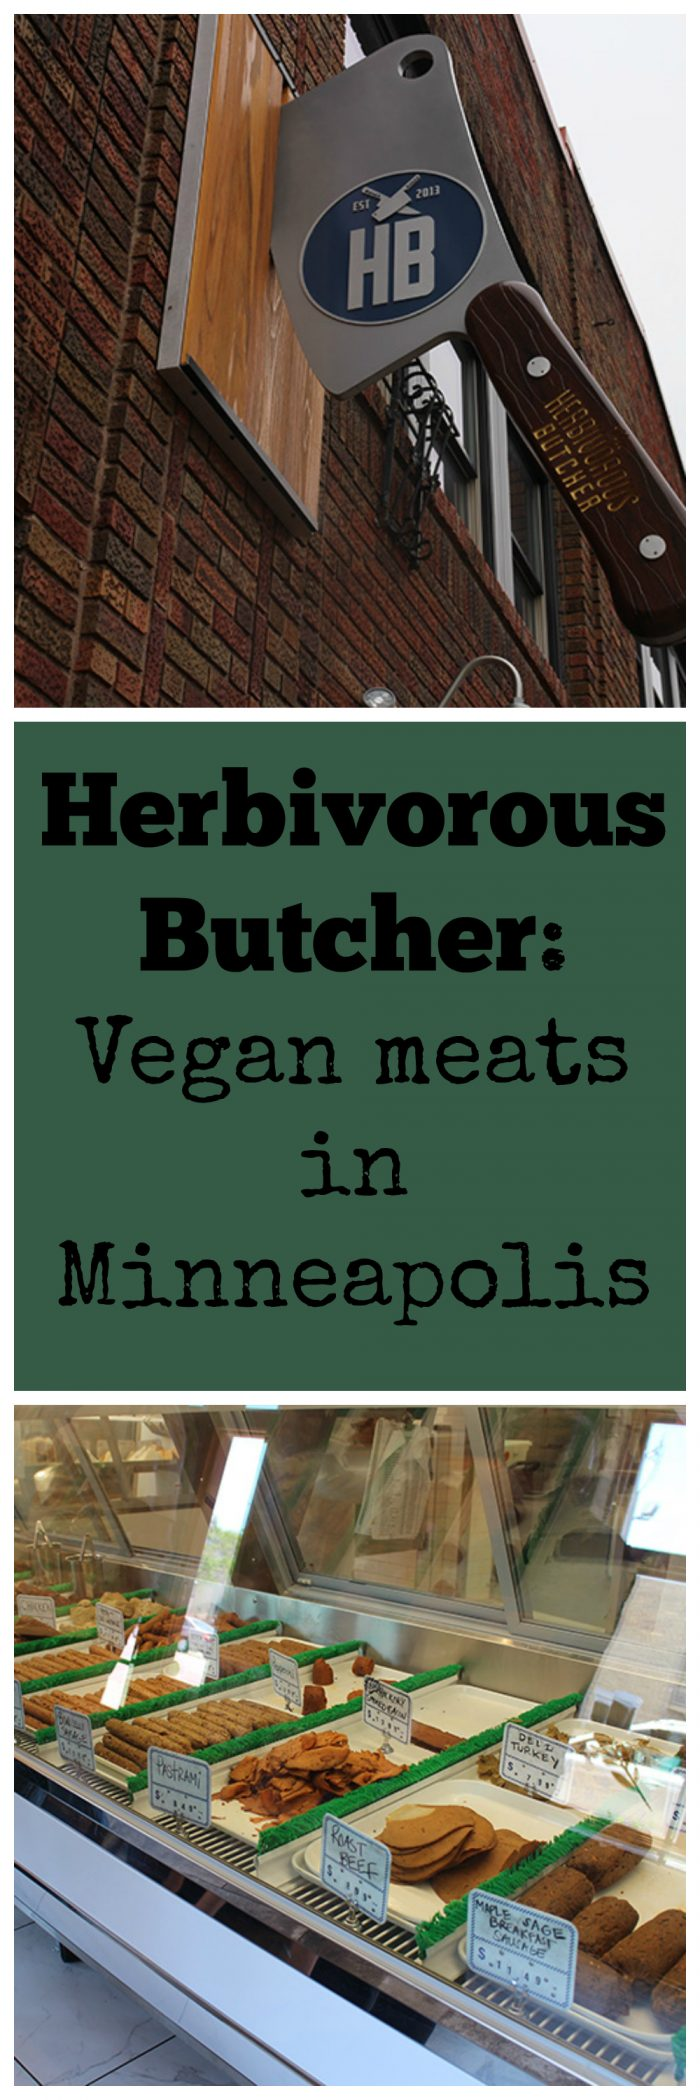 Herbivorous Butcher: Vegan meats in Minneapolis | cadryskitchen.com